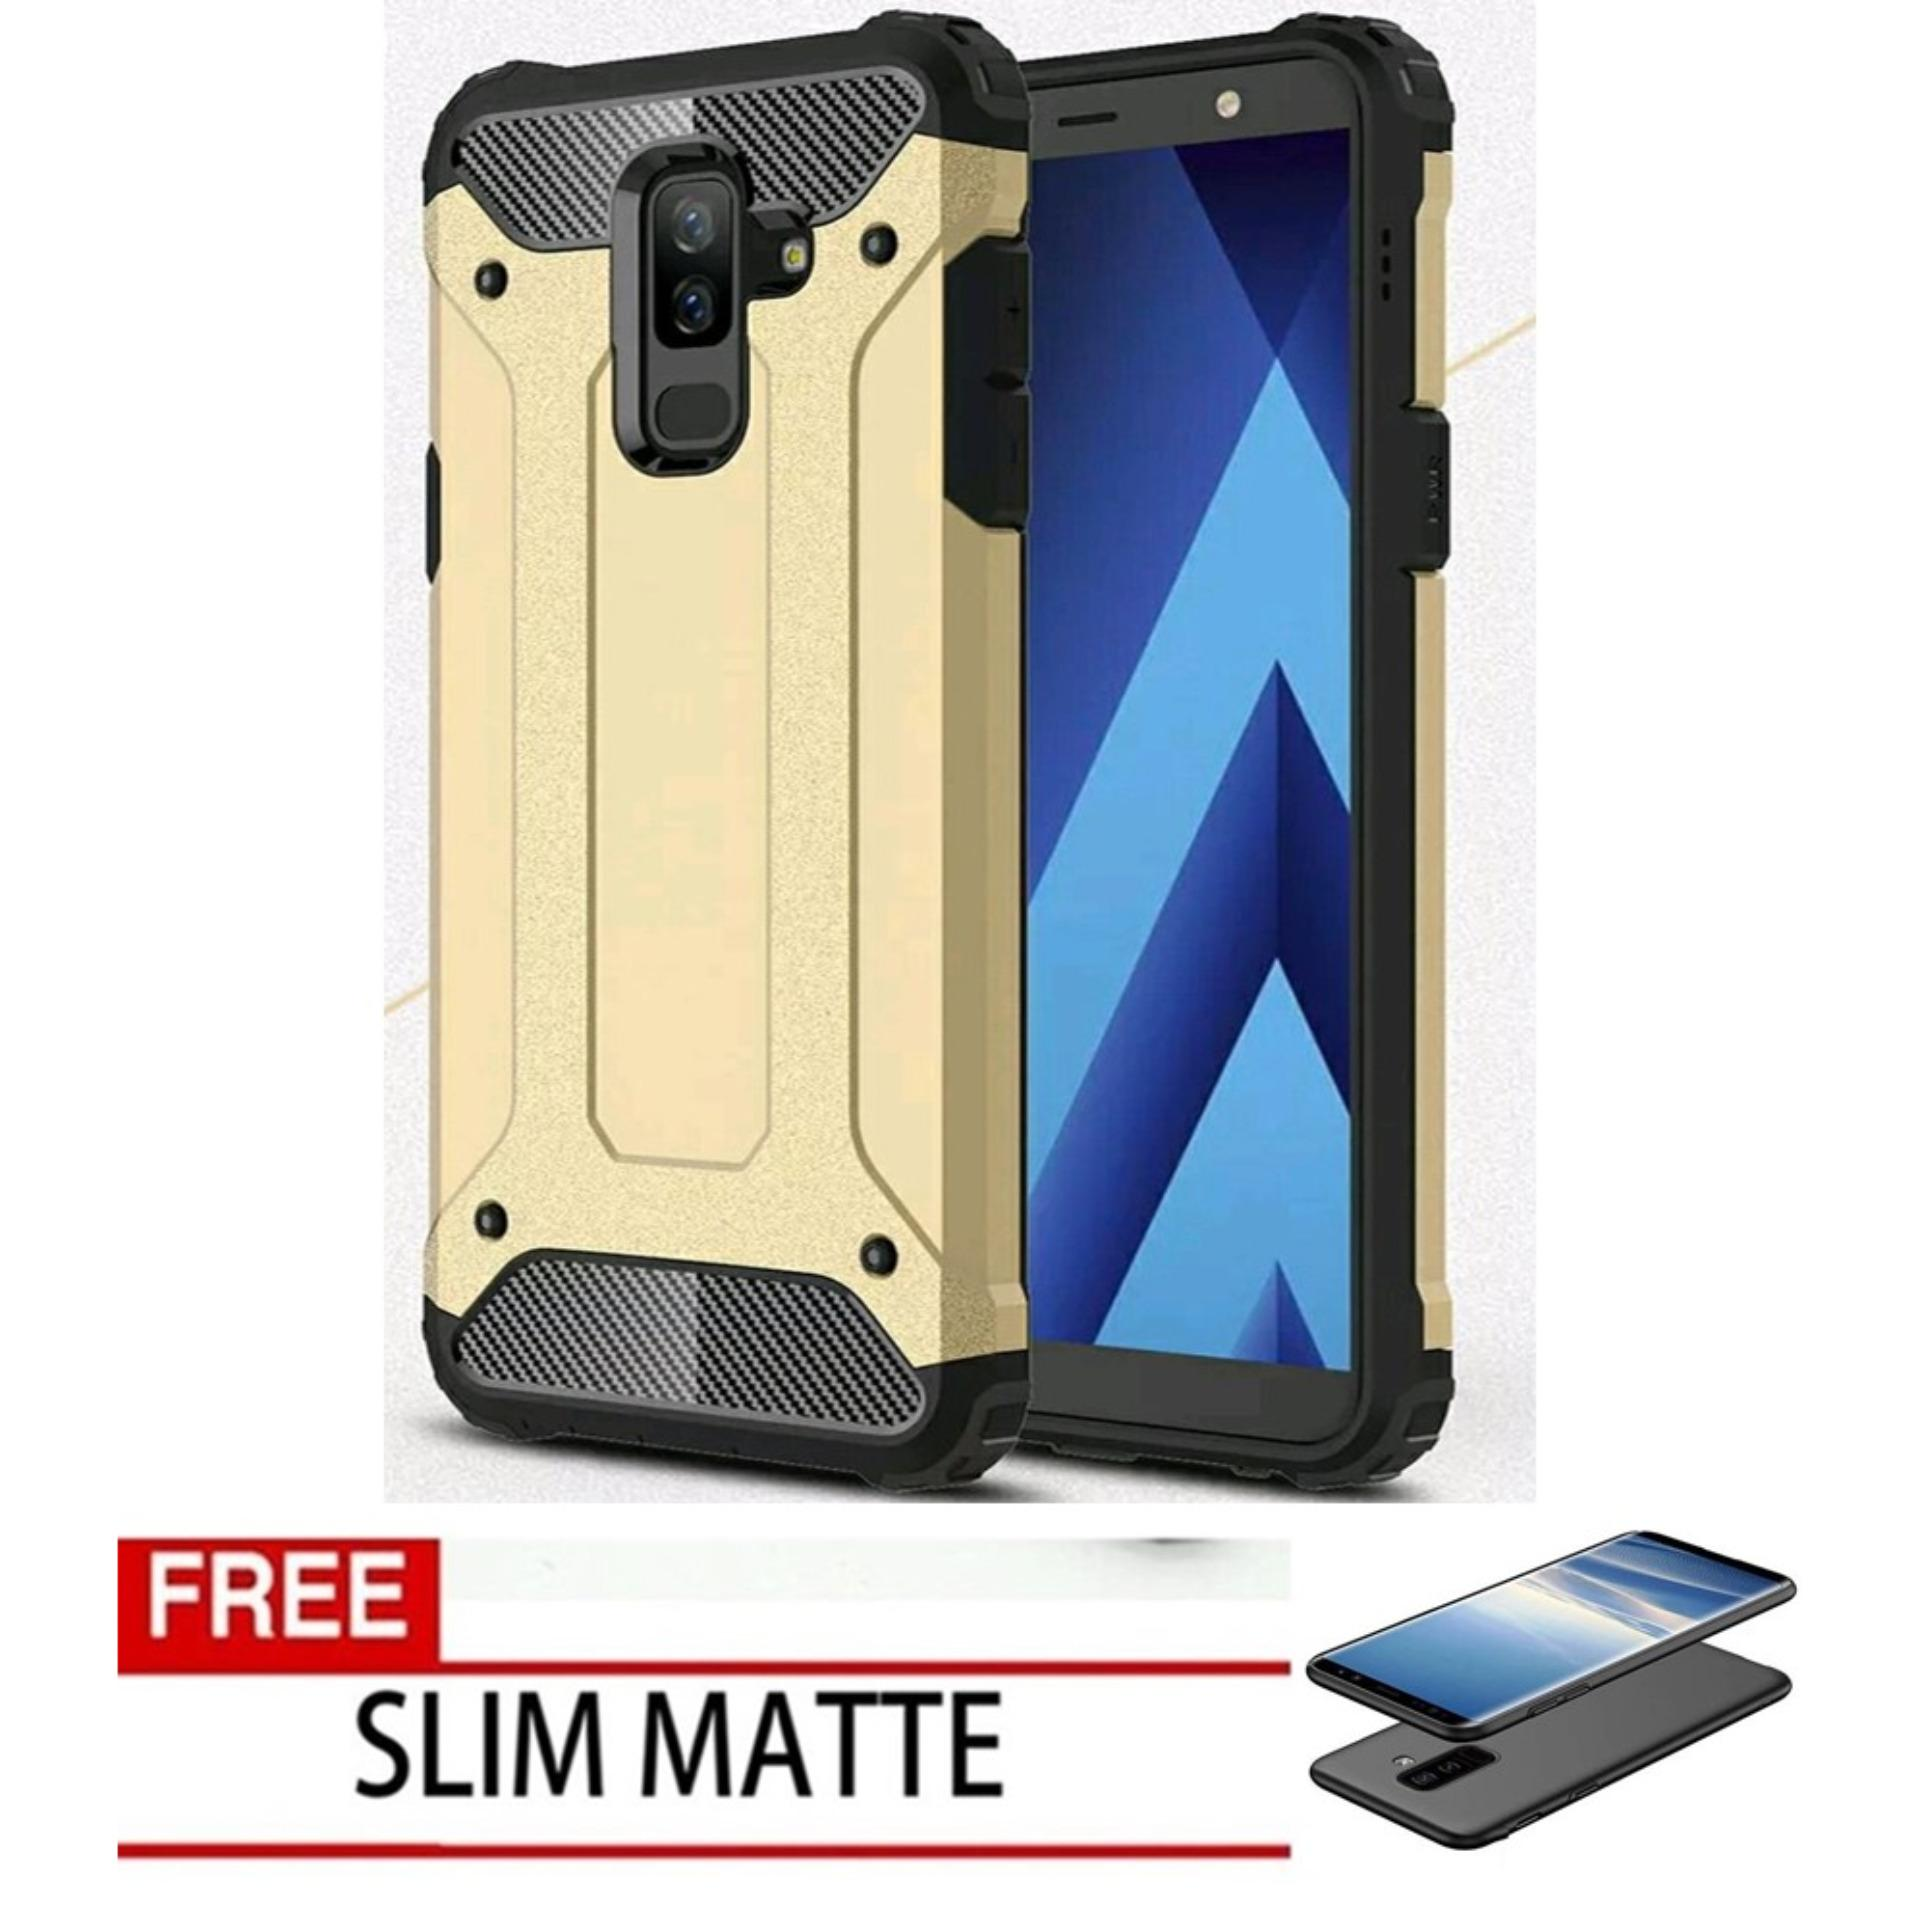 Case Hard Cover Robot Shockproof Armor For Samsung Galaxy J8 2018 - Gold FREE Slim Matte